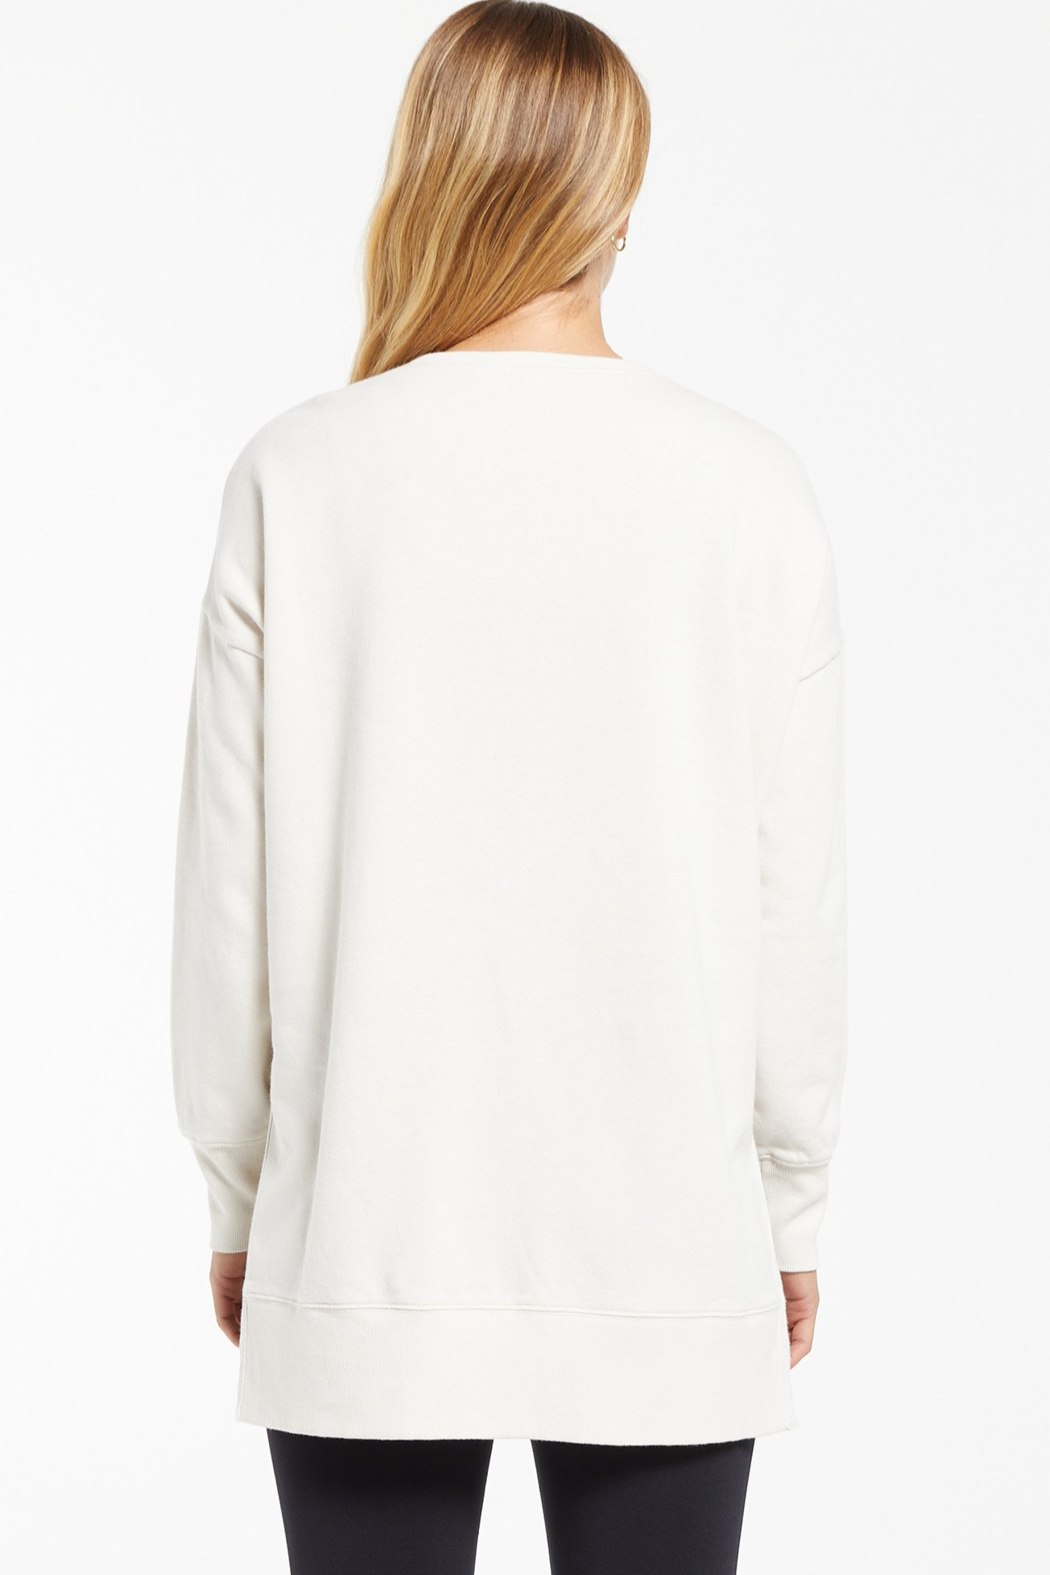 z supply Layer Up Sweatshirt - Side Cropped Image